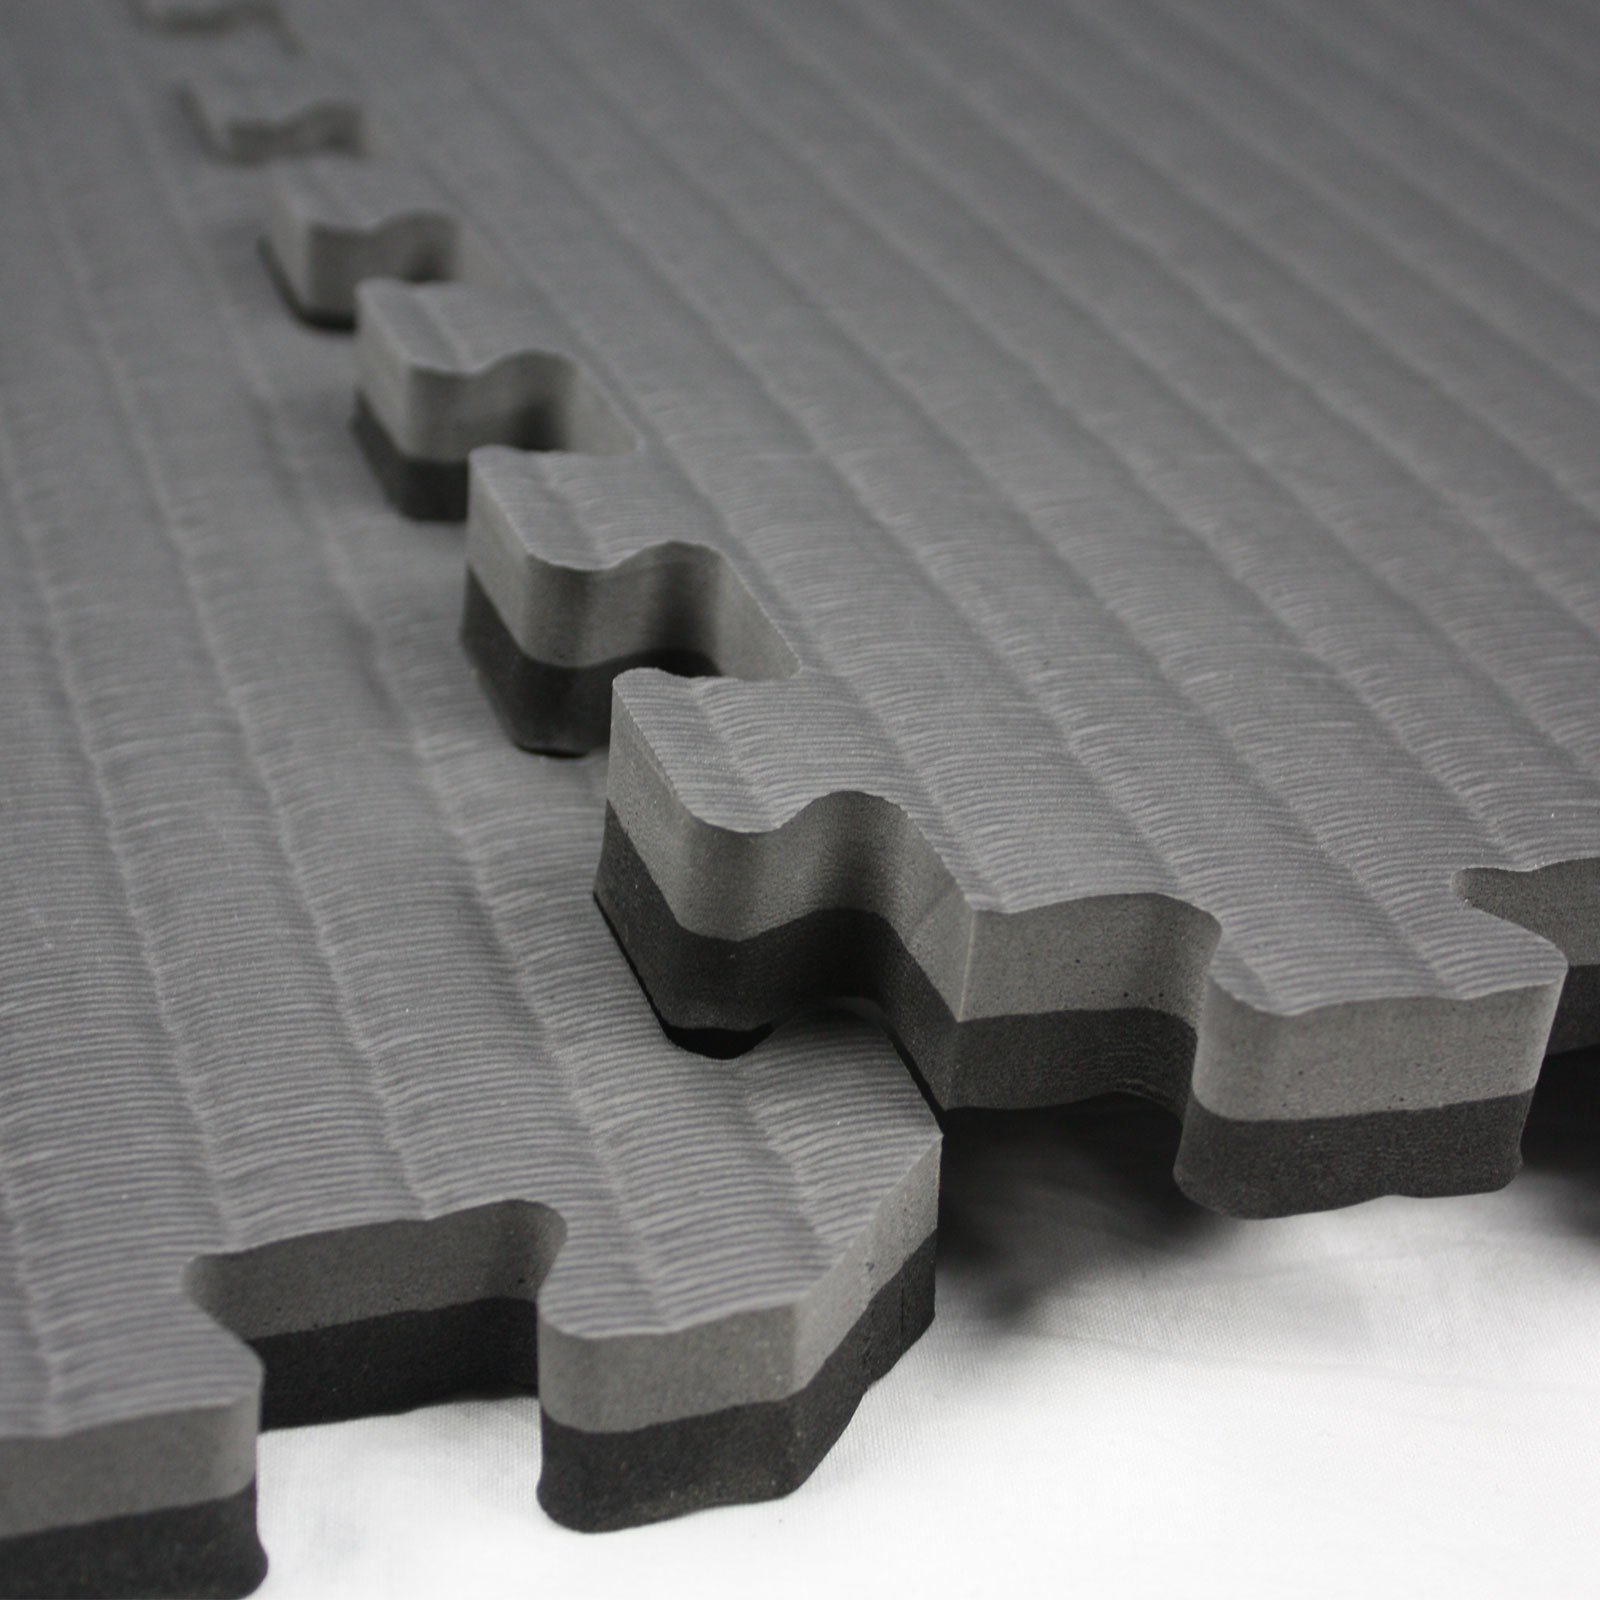 IncStores - Tatami Foam Tiles (Black/Grey, 16 Tiles) - Extra Thick mats Perfect for Martial Arts, MMA, Lightweight Home Gyms, p90x, Gymnastics, Yoga, Cardio, Aerobic, and Exercises by IncStores (Image #3)